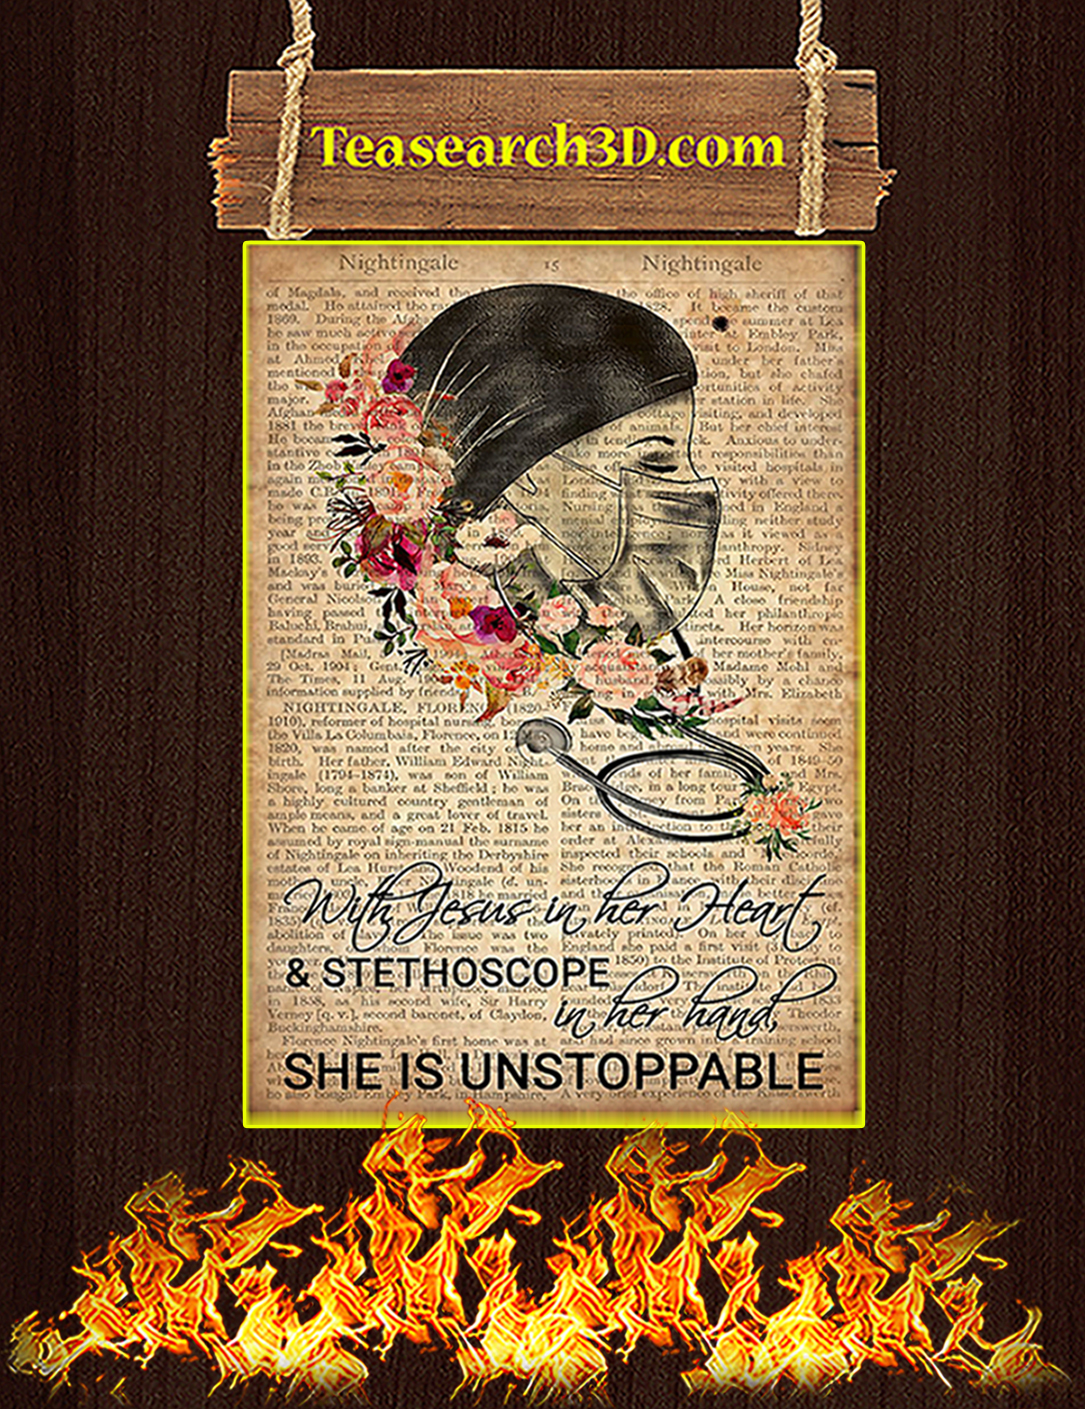 Nurse With Jesus in her heart she is unstoppable poster A2